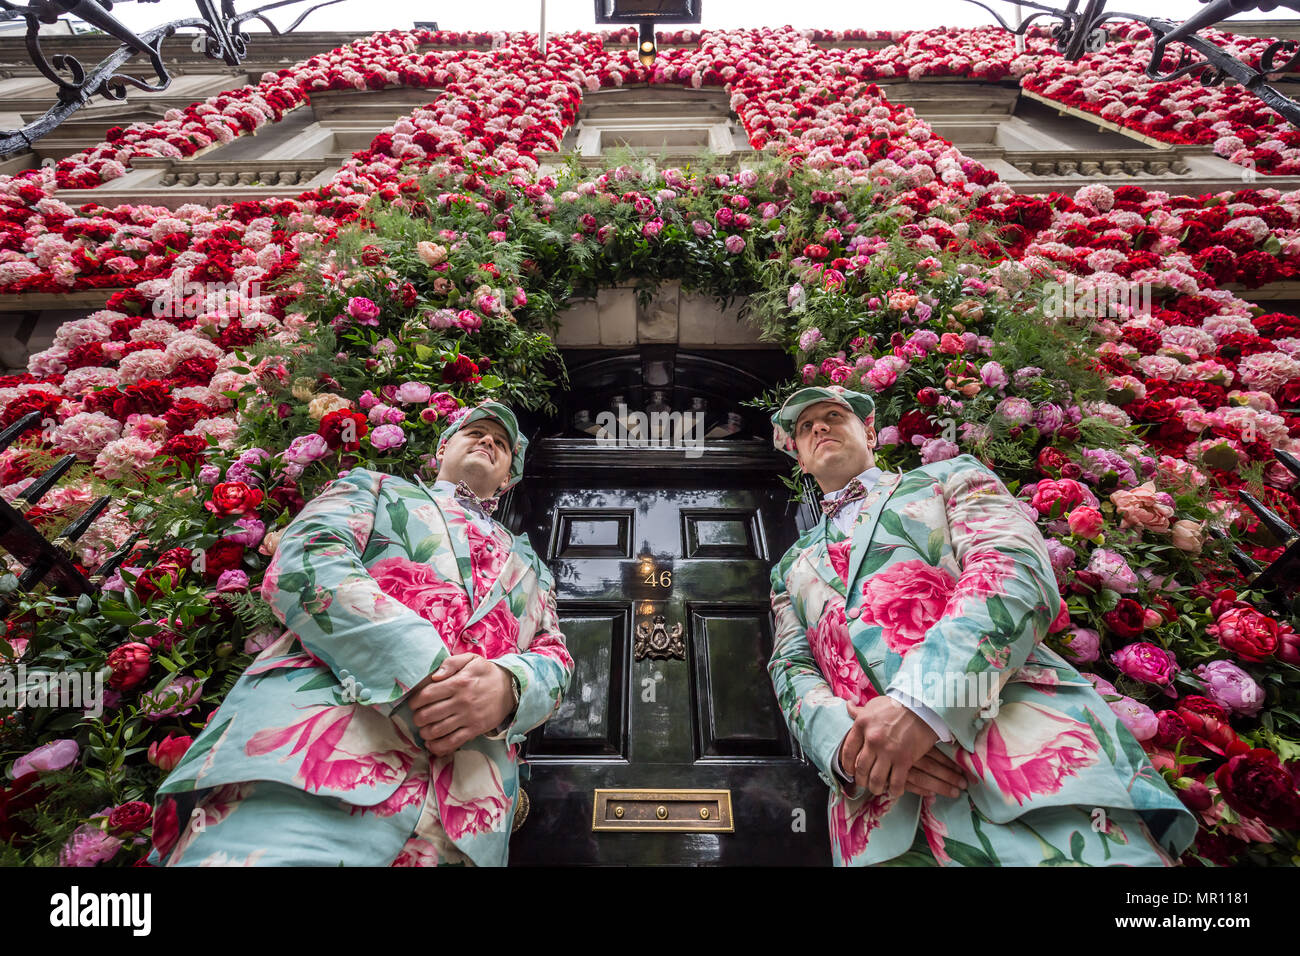 London, UK. 25th May 2018. Doormen dressed in floral pattern suits stand on duty outside of Annabel's private members club, adorned with thousands of flowers, timed to coincide with the RHS Chelsea Flower Show, in Mayfair Credit: Guy Corbishley/Alamy Live News - Stock Image